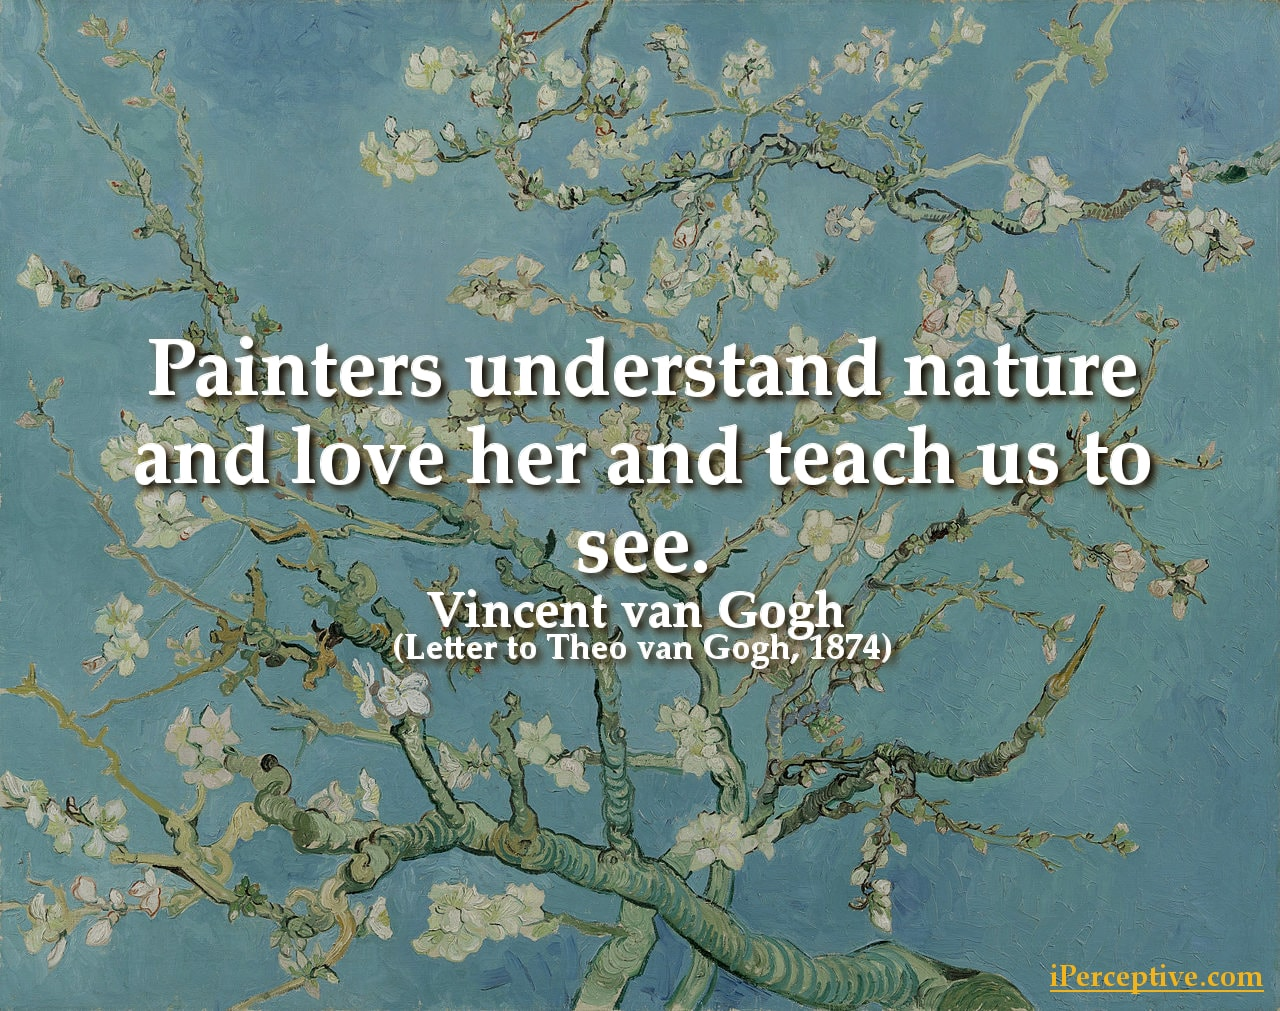 Vincent van Gogh Quote: Painters understand nature and love her...